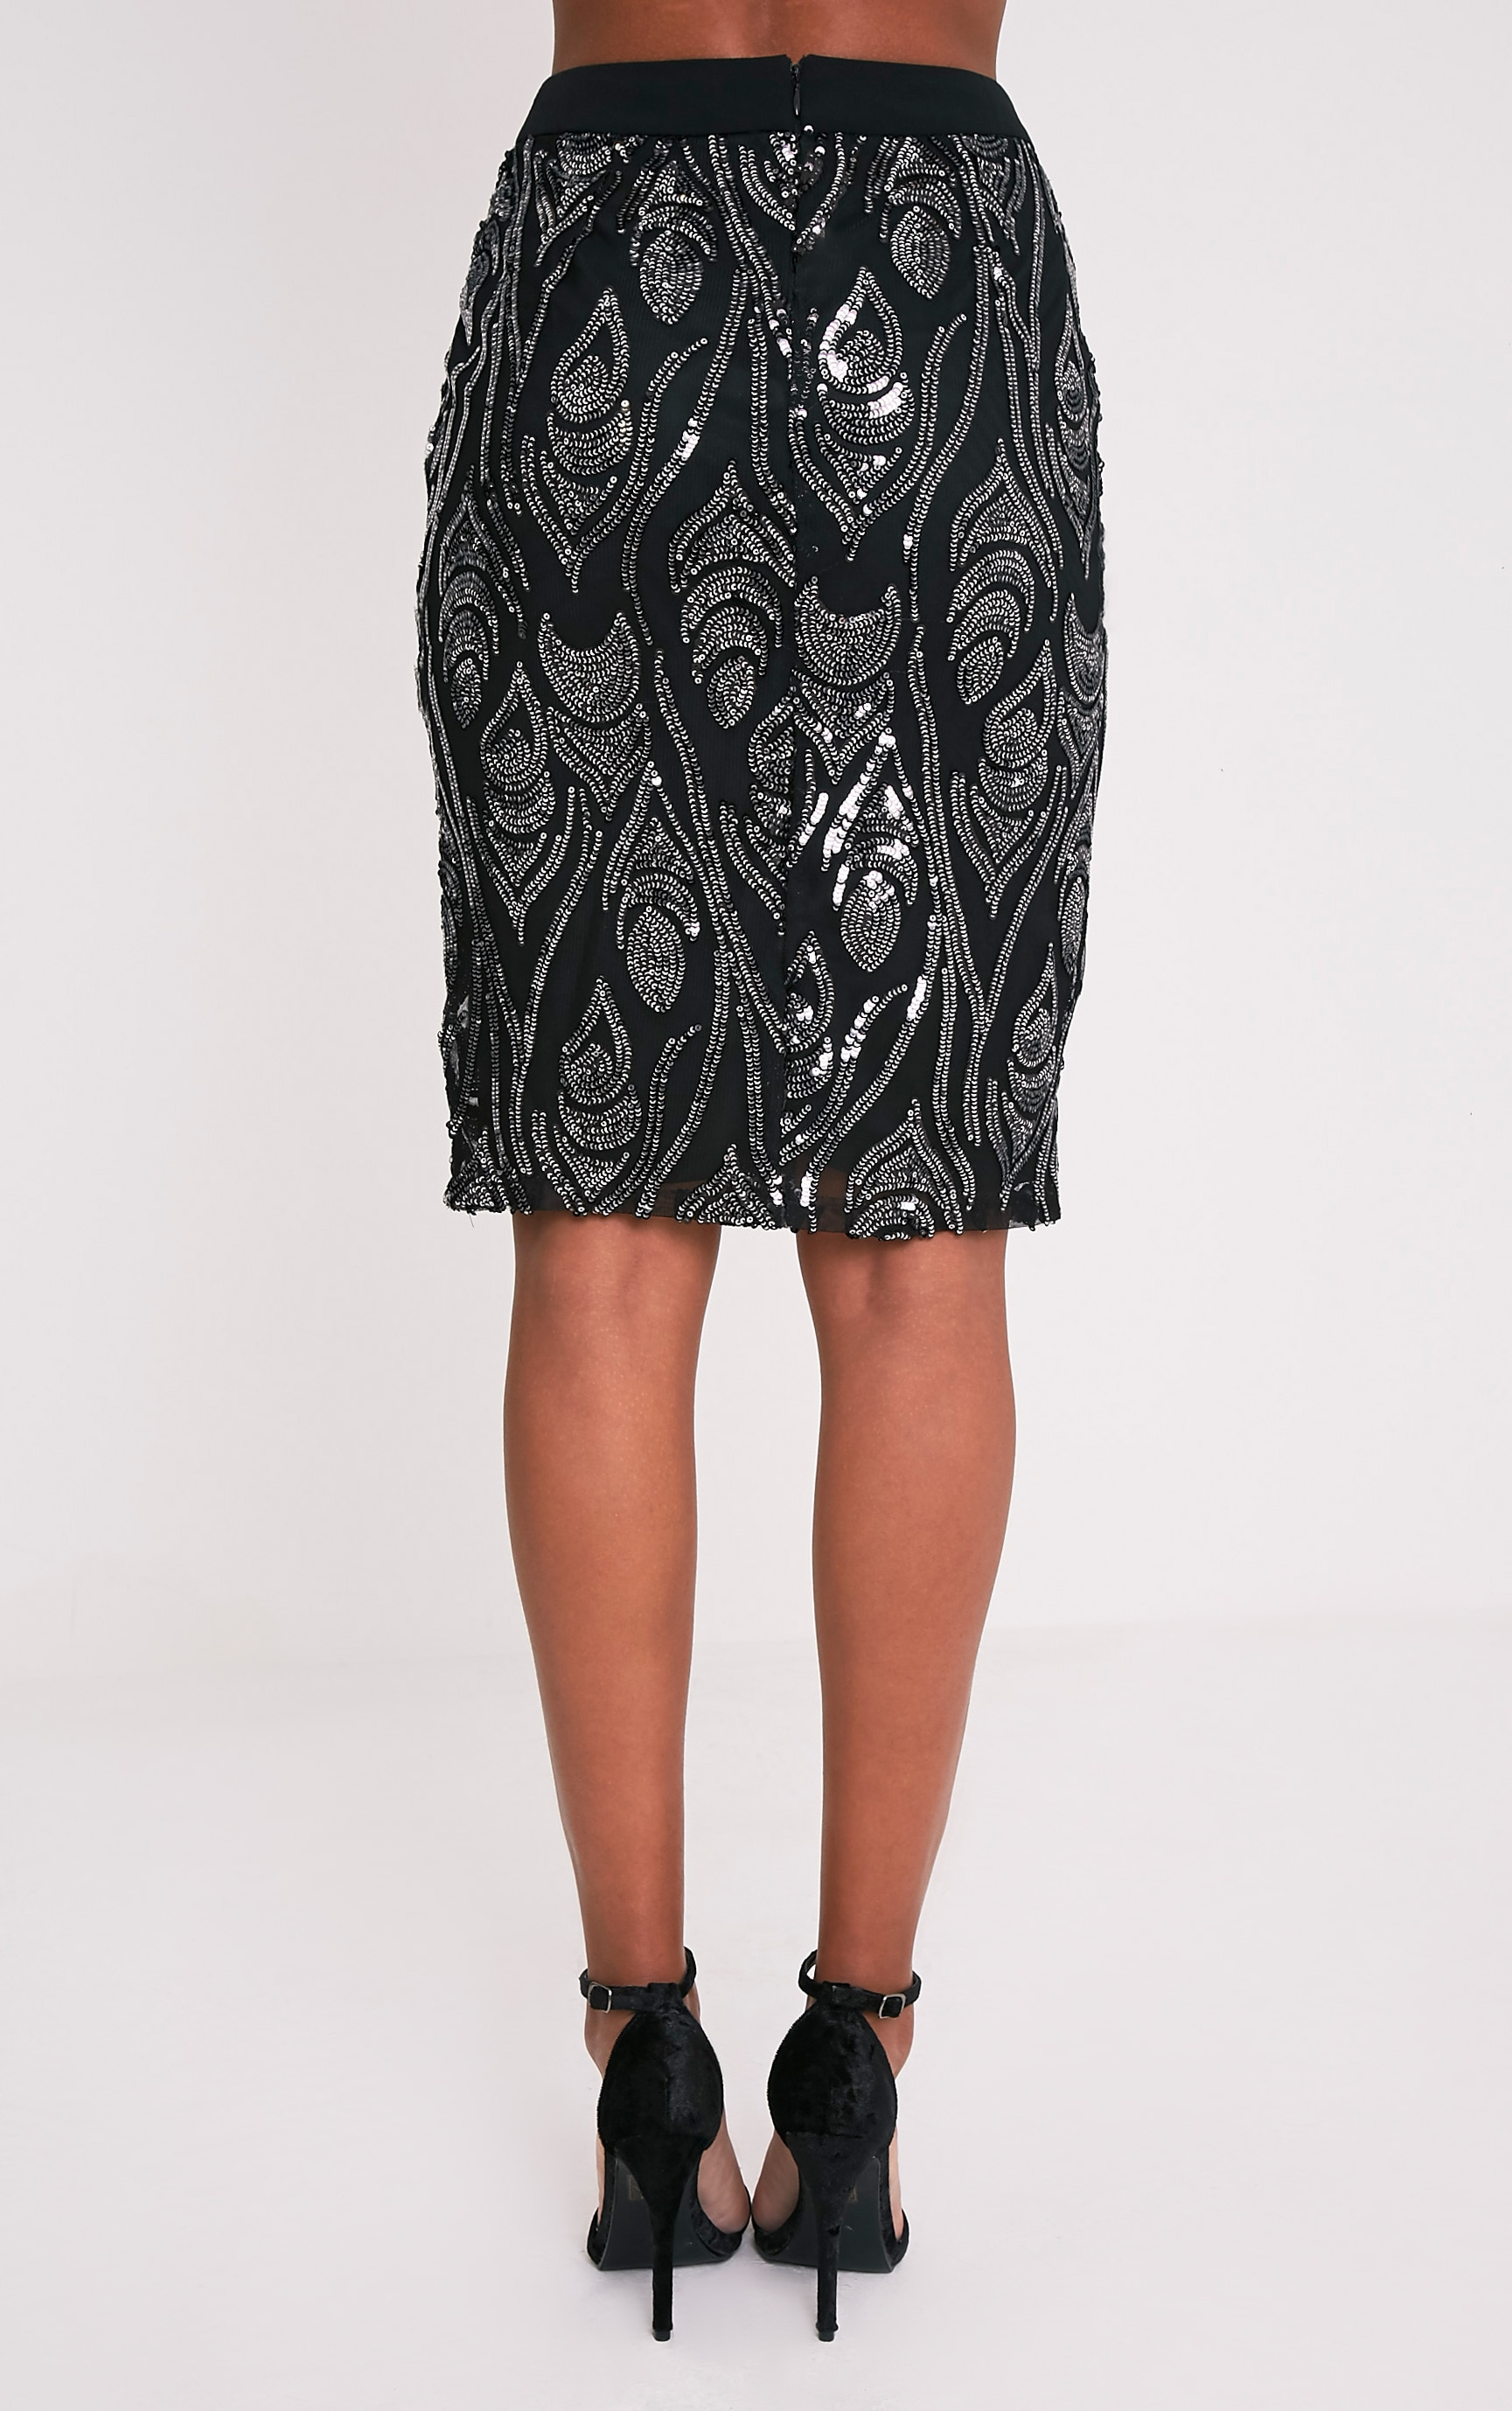 Ramona Black Sequin Split Midi Skirt  5